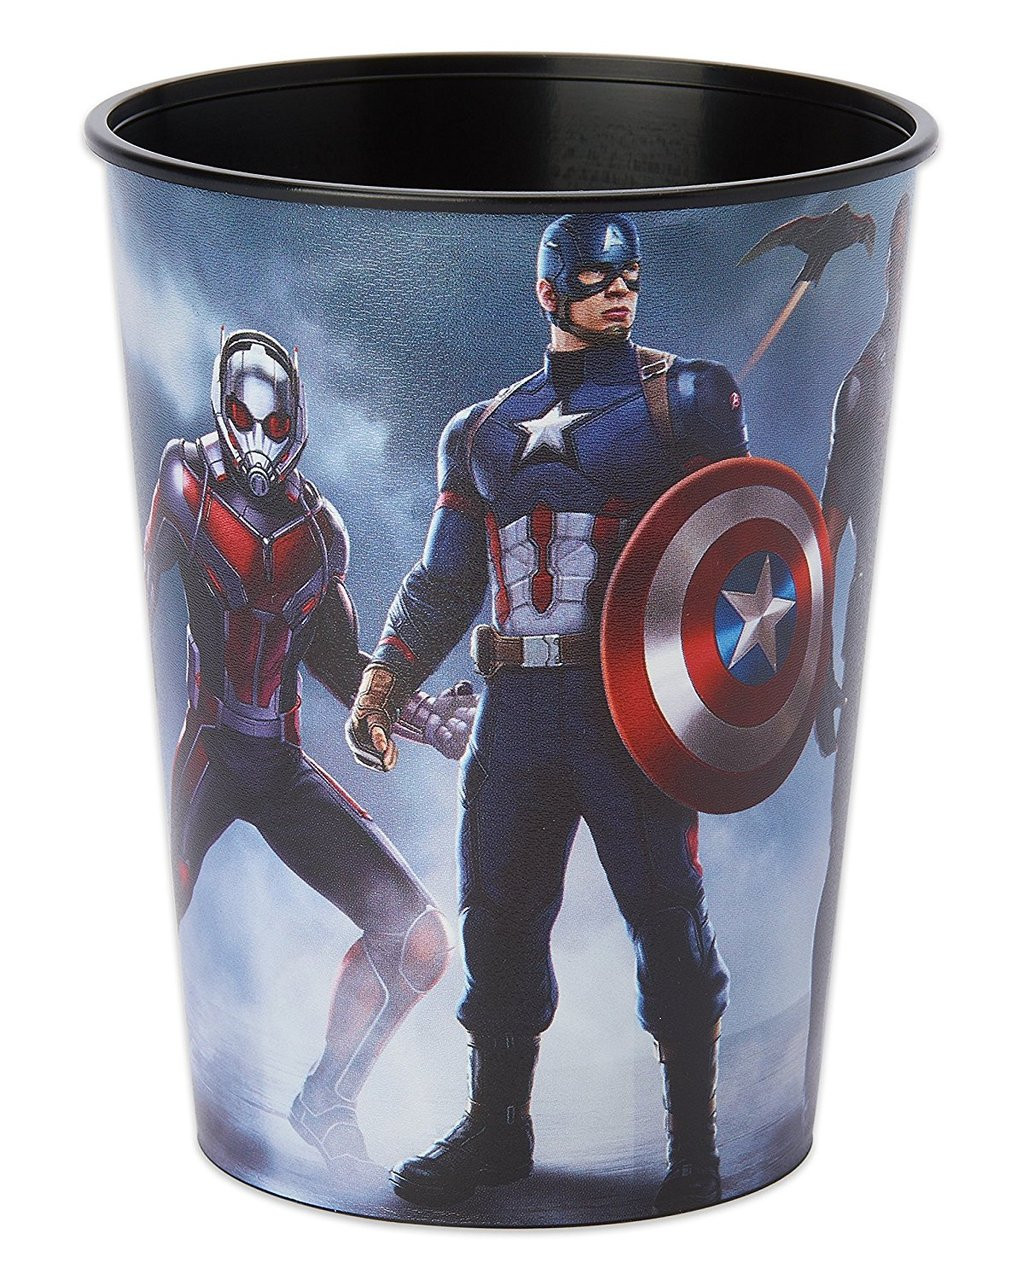 Civil War Plastic 16 oz Keepsake Favor Cup (1 Cup) - Team Captain America